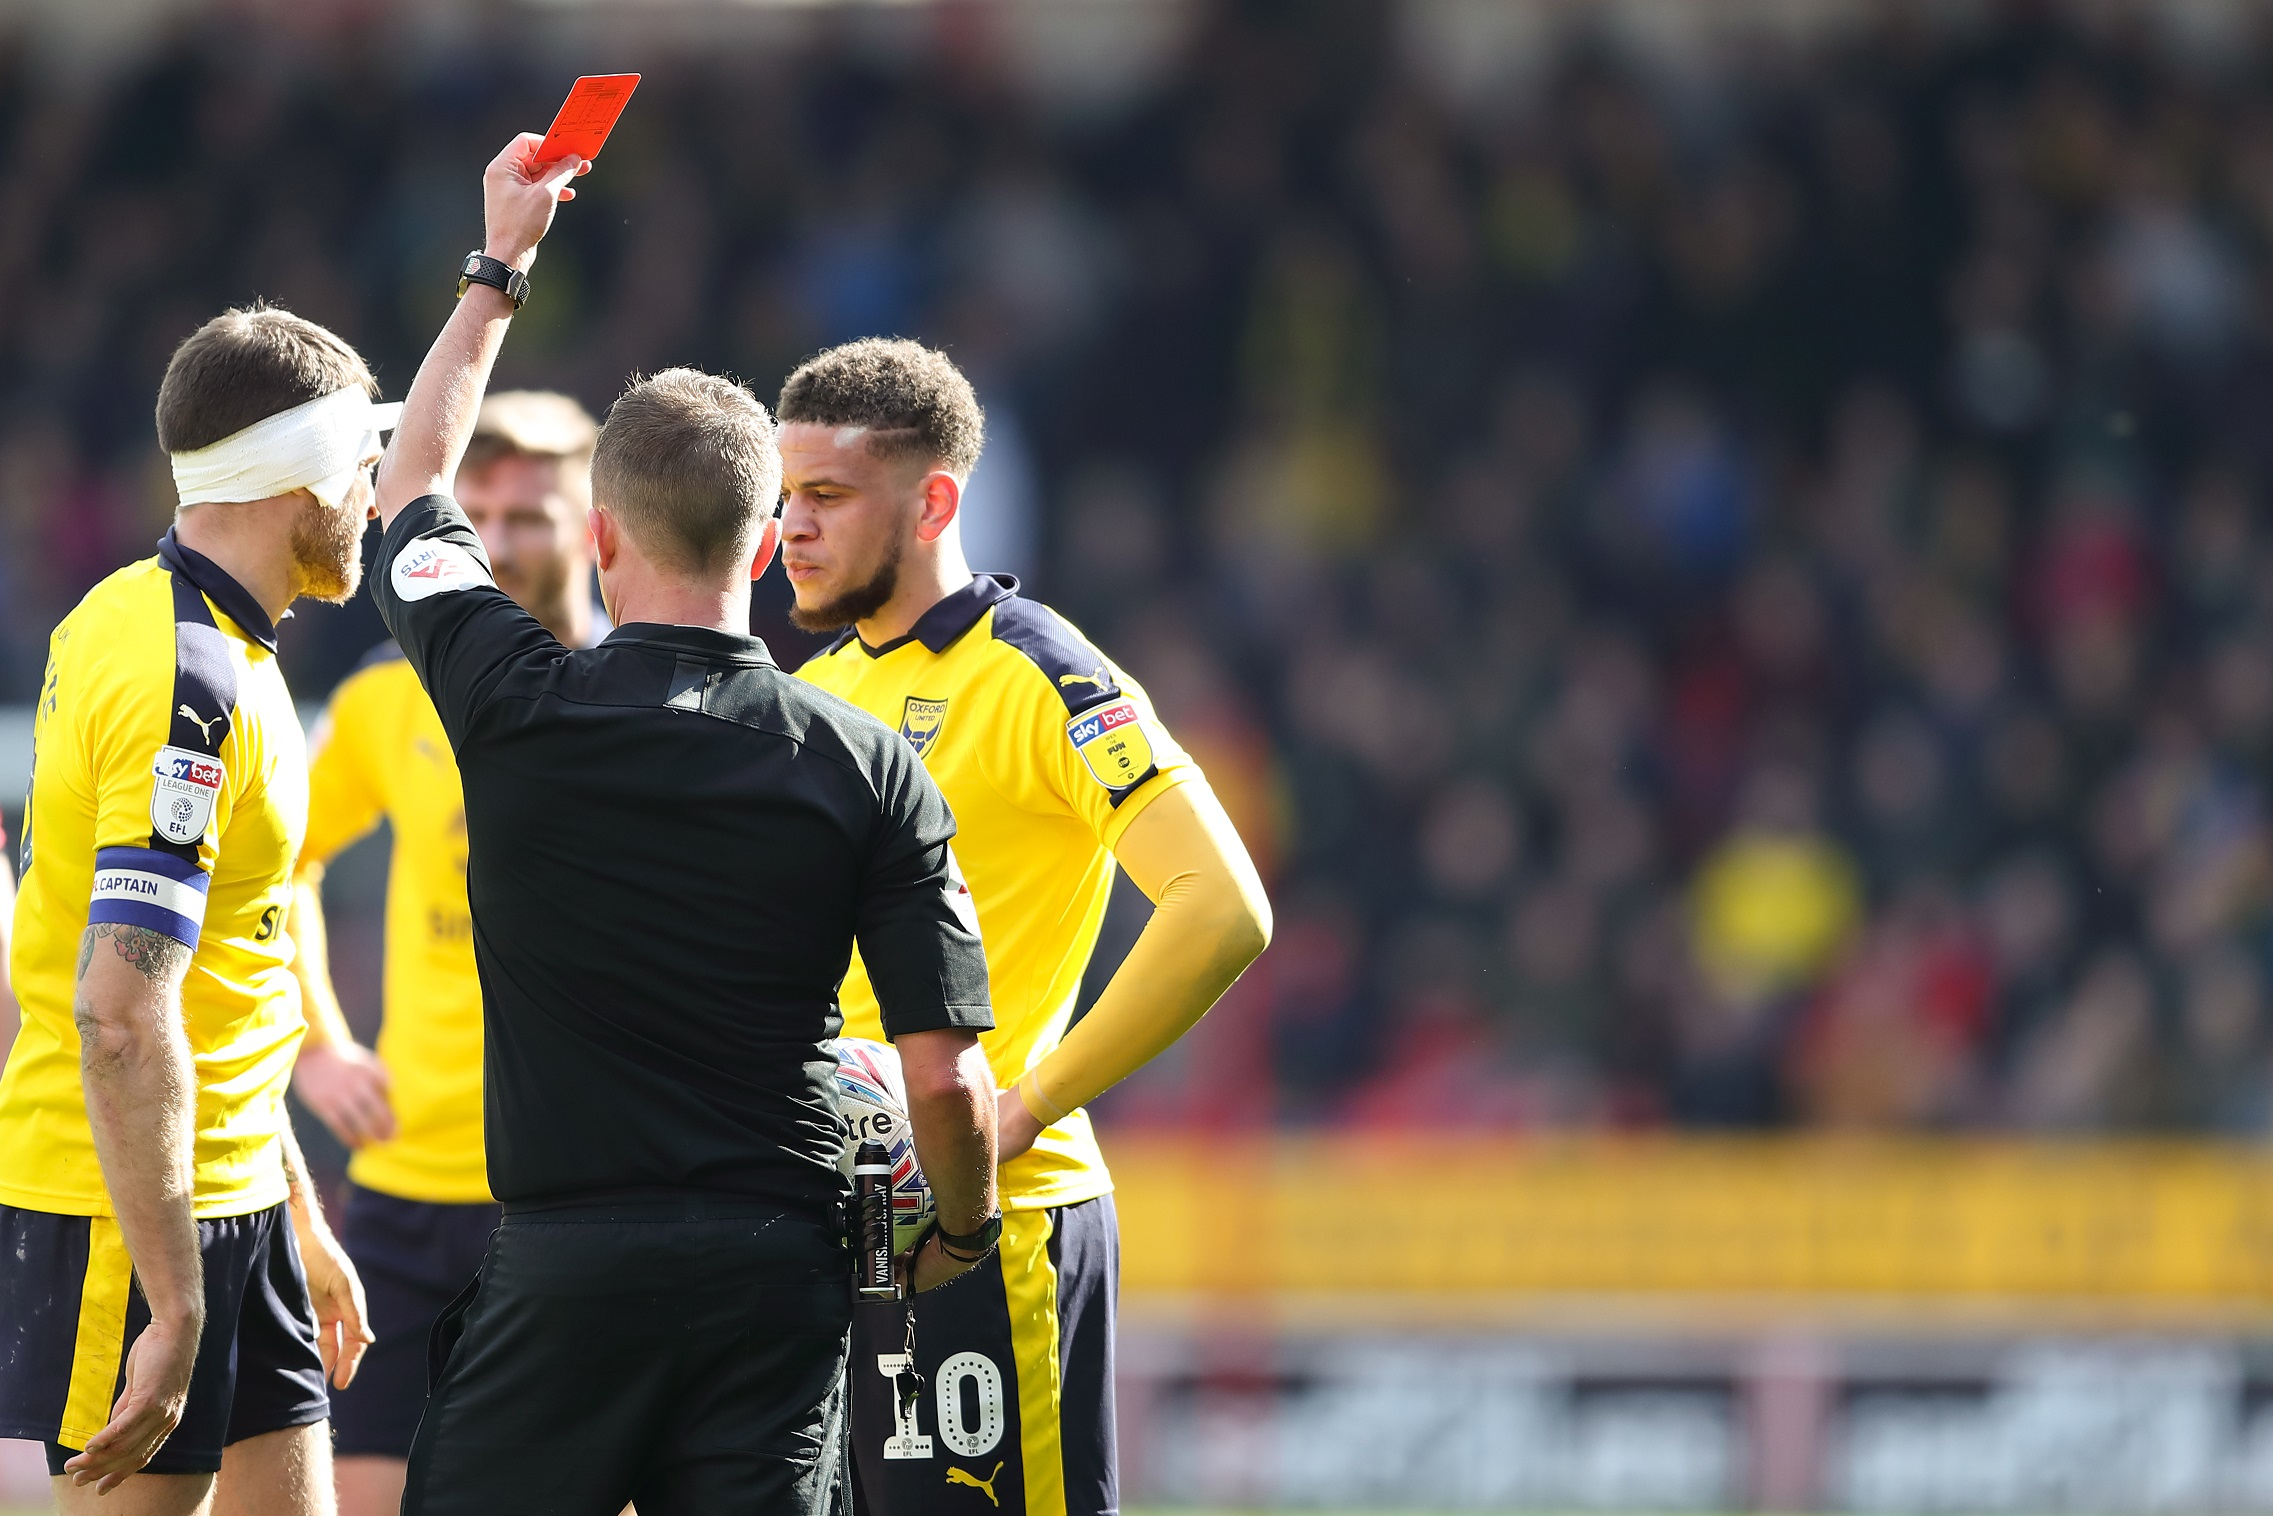 Marcus Browne receives the red card at Walsall from referee David Webb  Picture: James Williamson